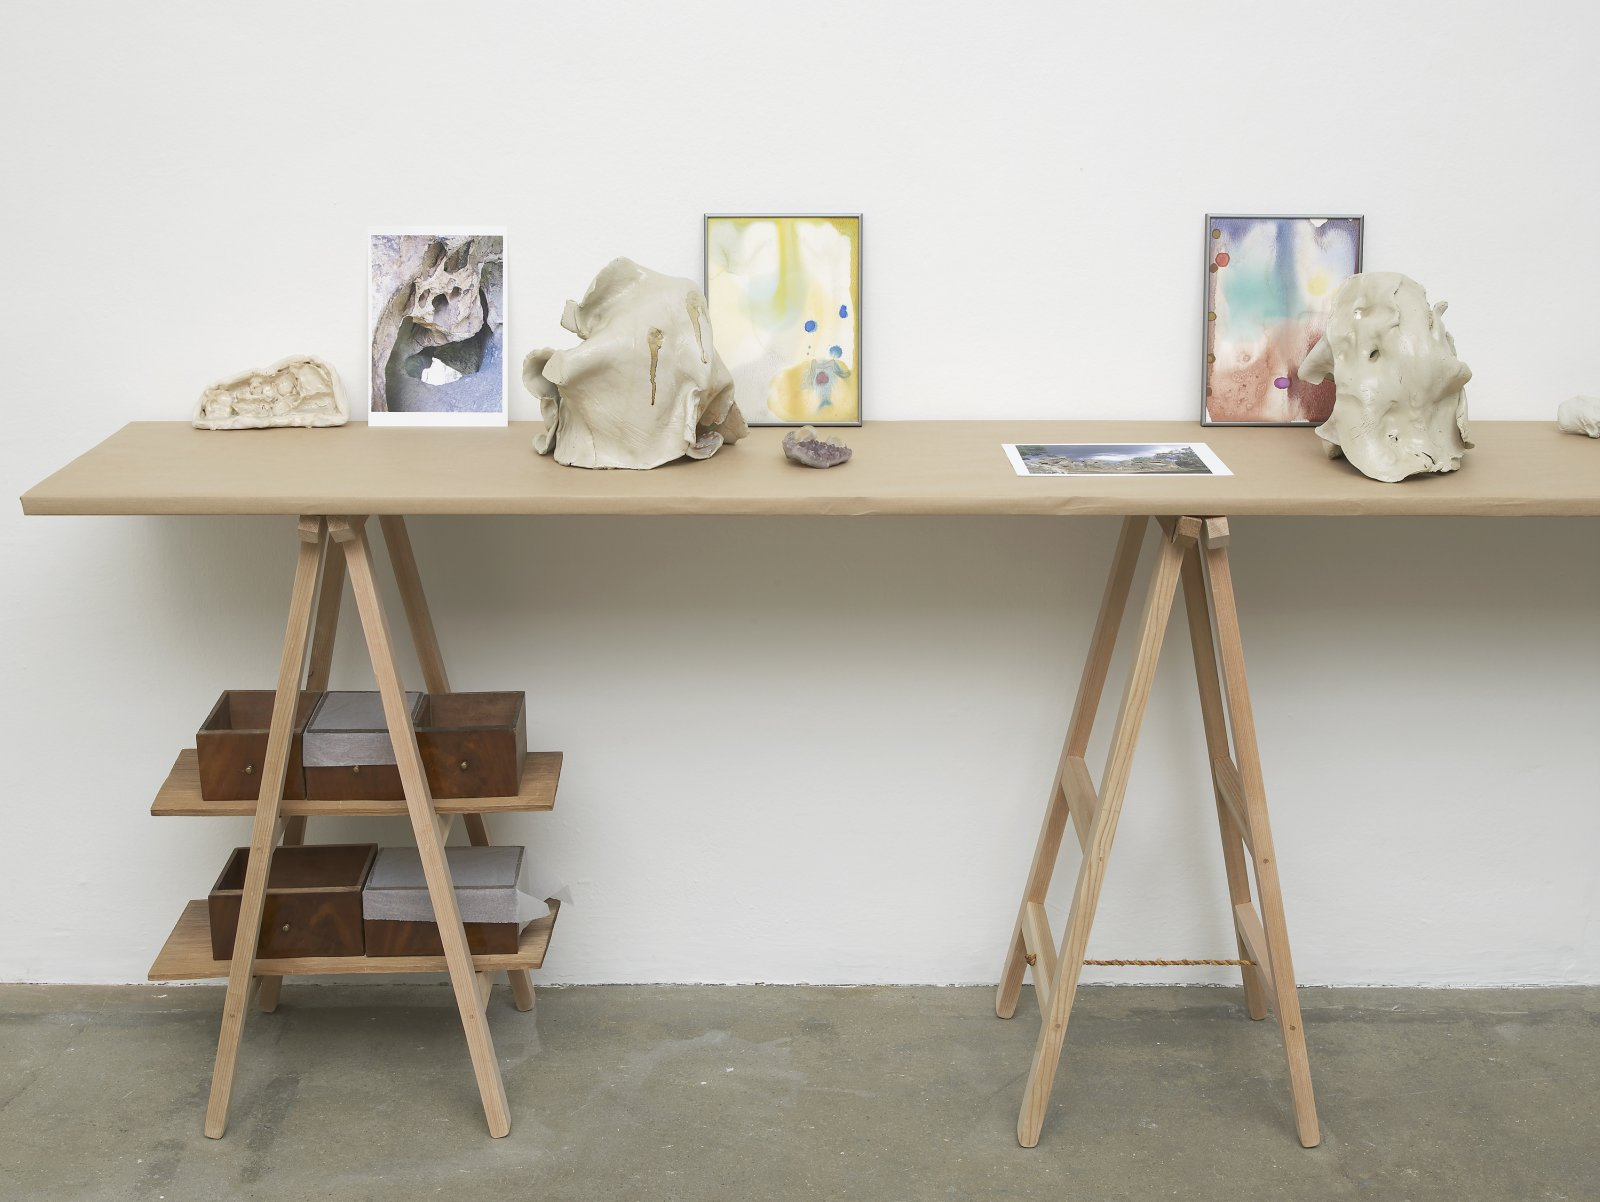 Christina Mackie, The Judges II (detail), 2011–2012, mixed media, dimensions variable. Installation view, Painting the Weights, Chisenhale Gallery, London, UK, 2012 by Christina Mackie